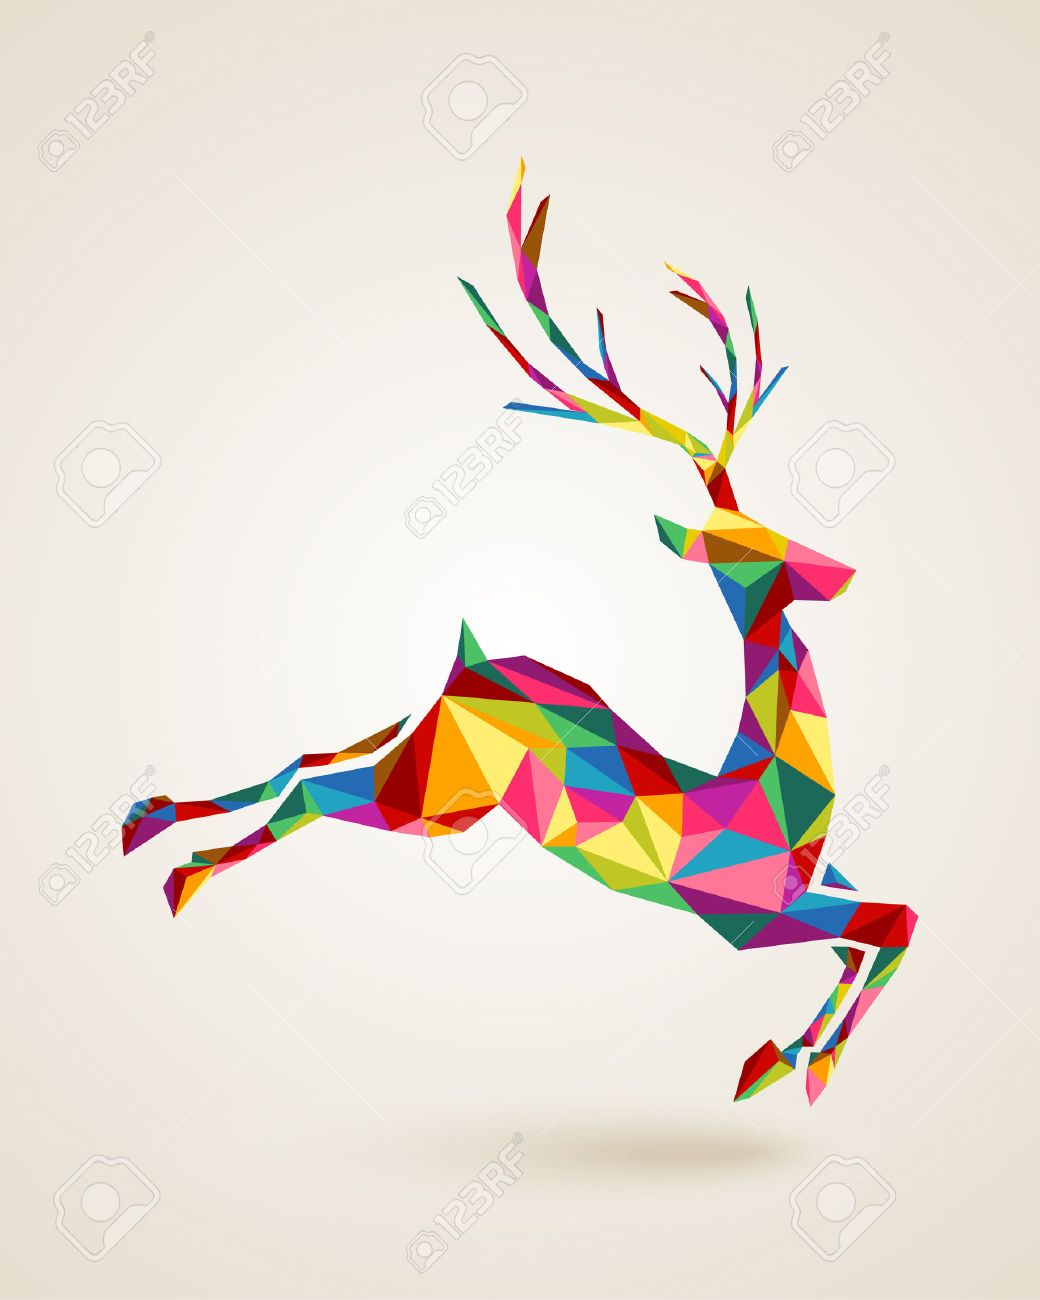 Merry Christmas Colorful Abstract Reindeer With Geometric Origami Composition EPS10 Vector File Organized In Layers